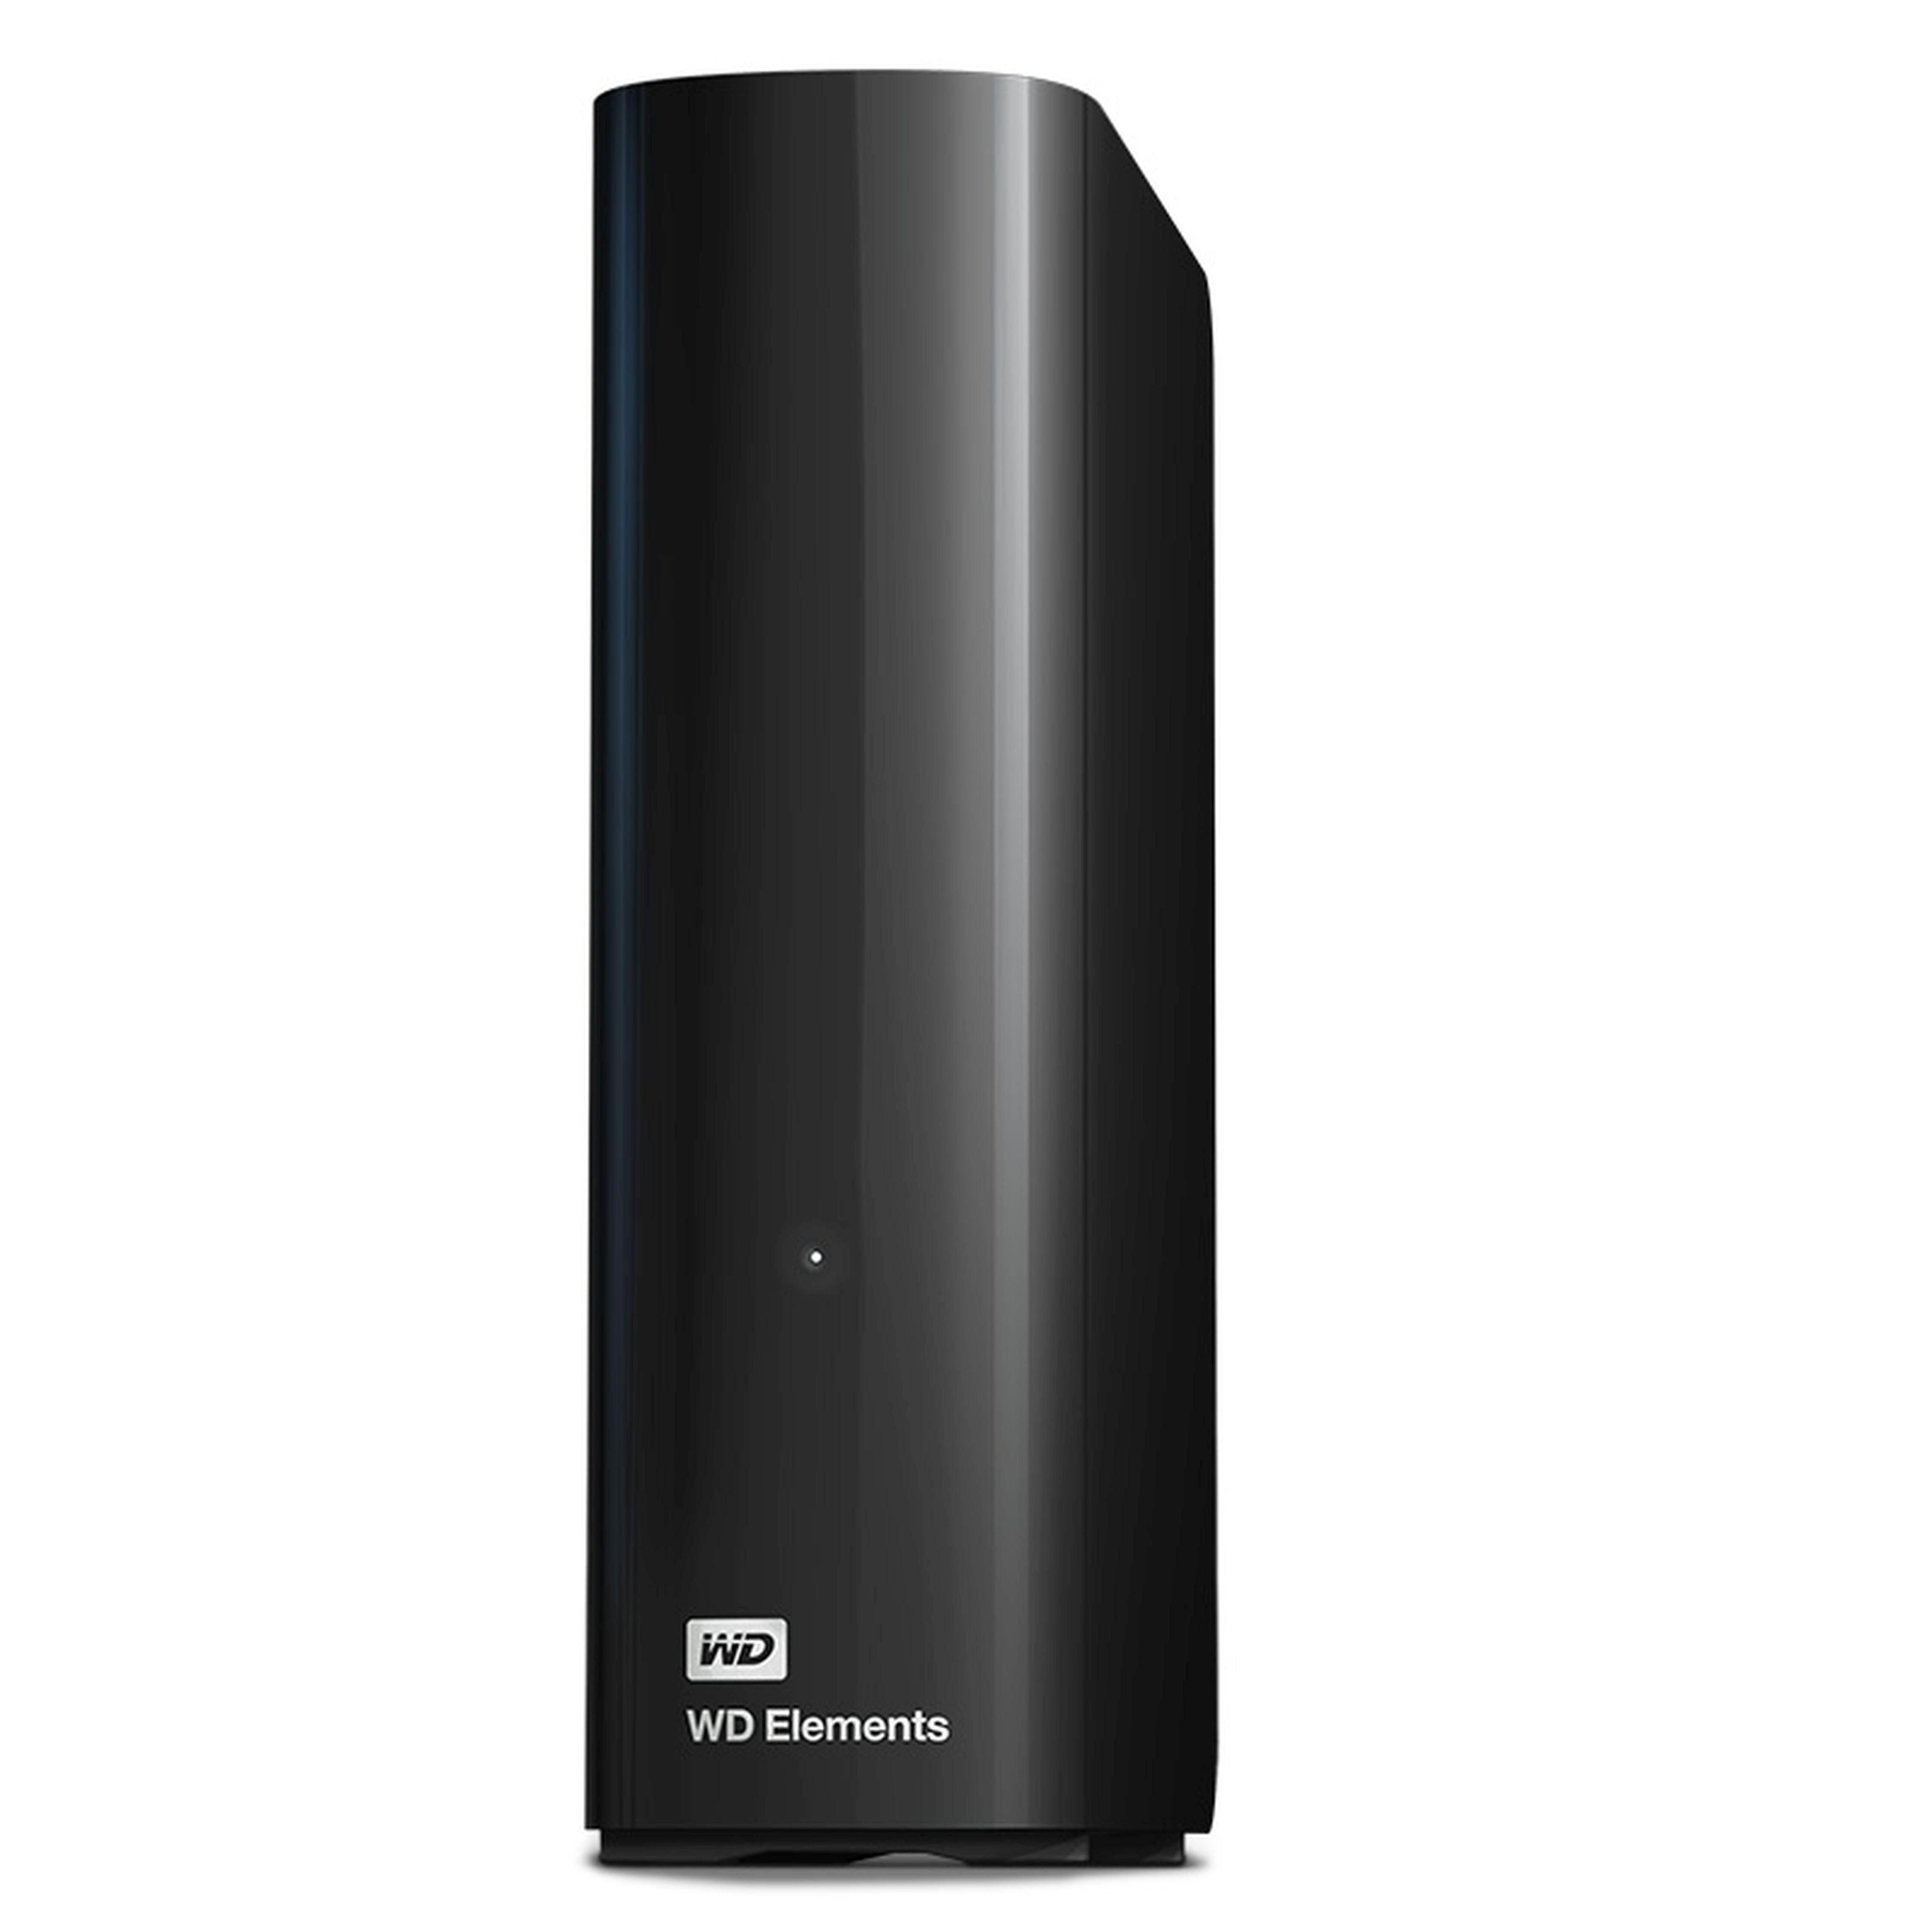 Western Digital Elements external HDD USB 3.0 »Desktop Speicher, USB 3.0«